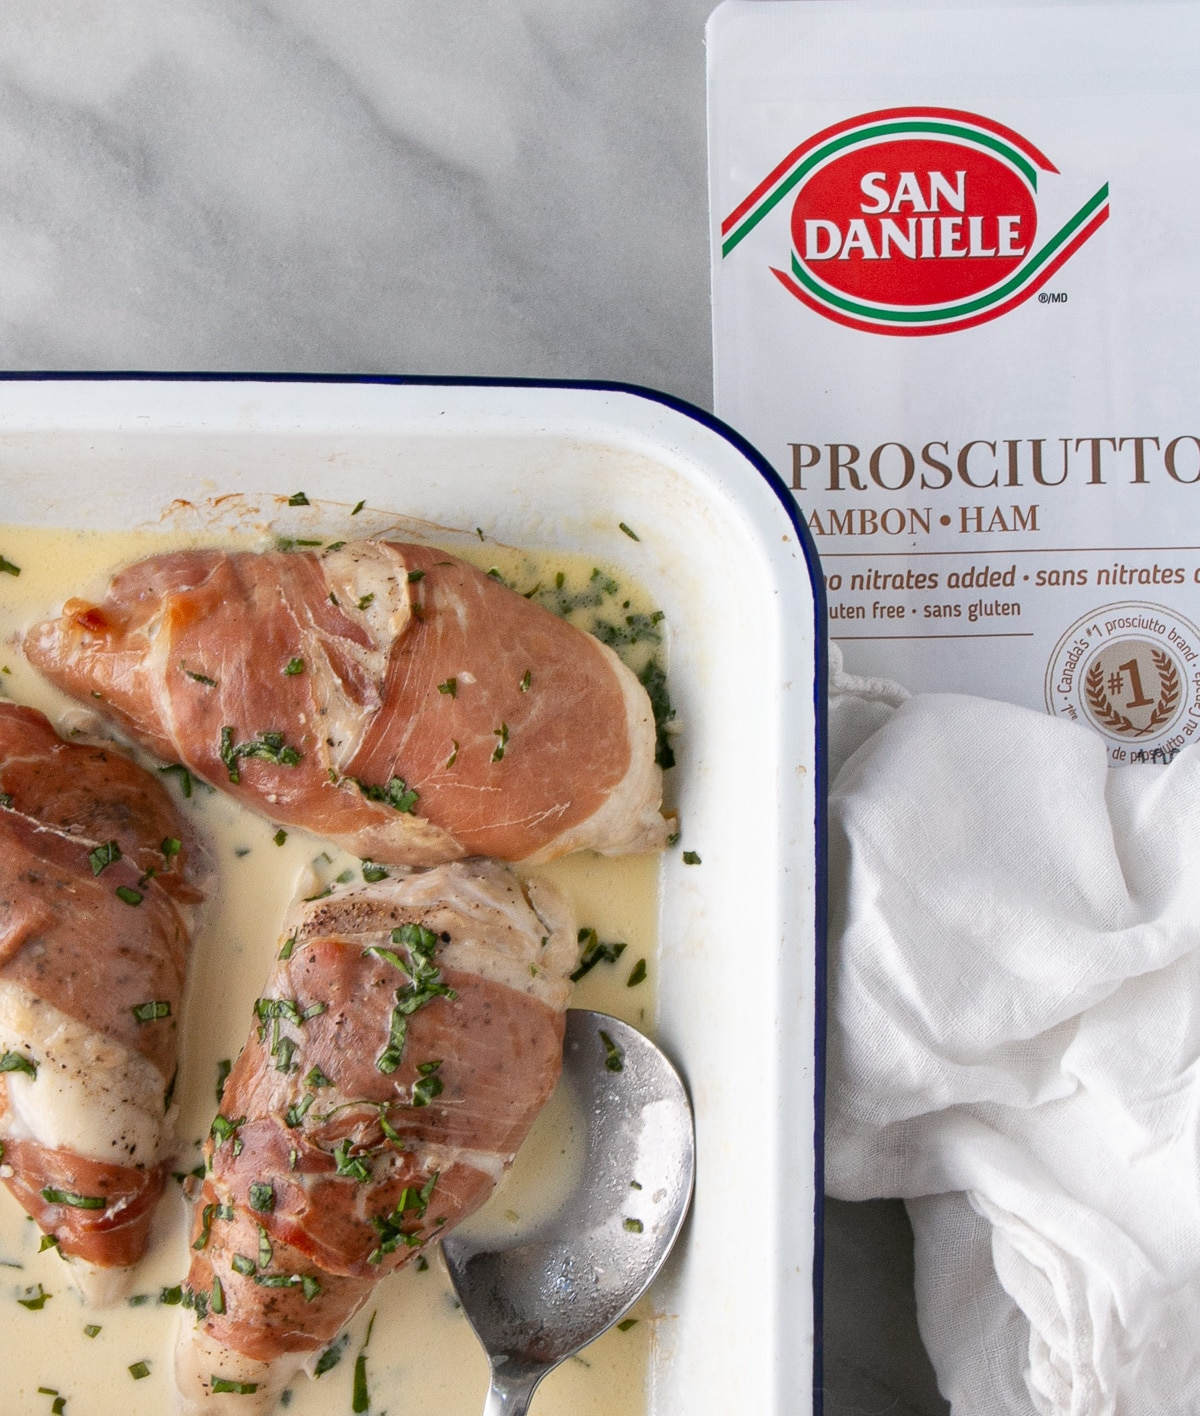 Prosciutto-Wrapped Chicken in a creamy mustard sauce with a scattering of fresh basil on top and the prosciutto packaging beside baking tray.